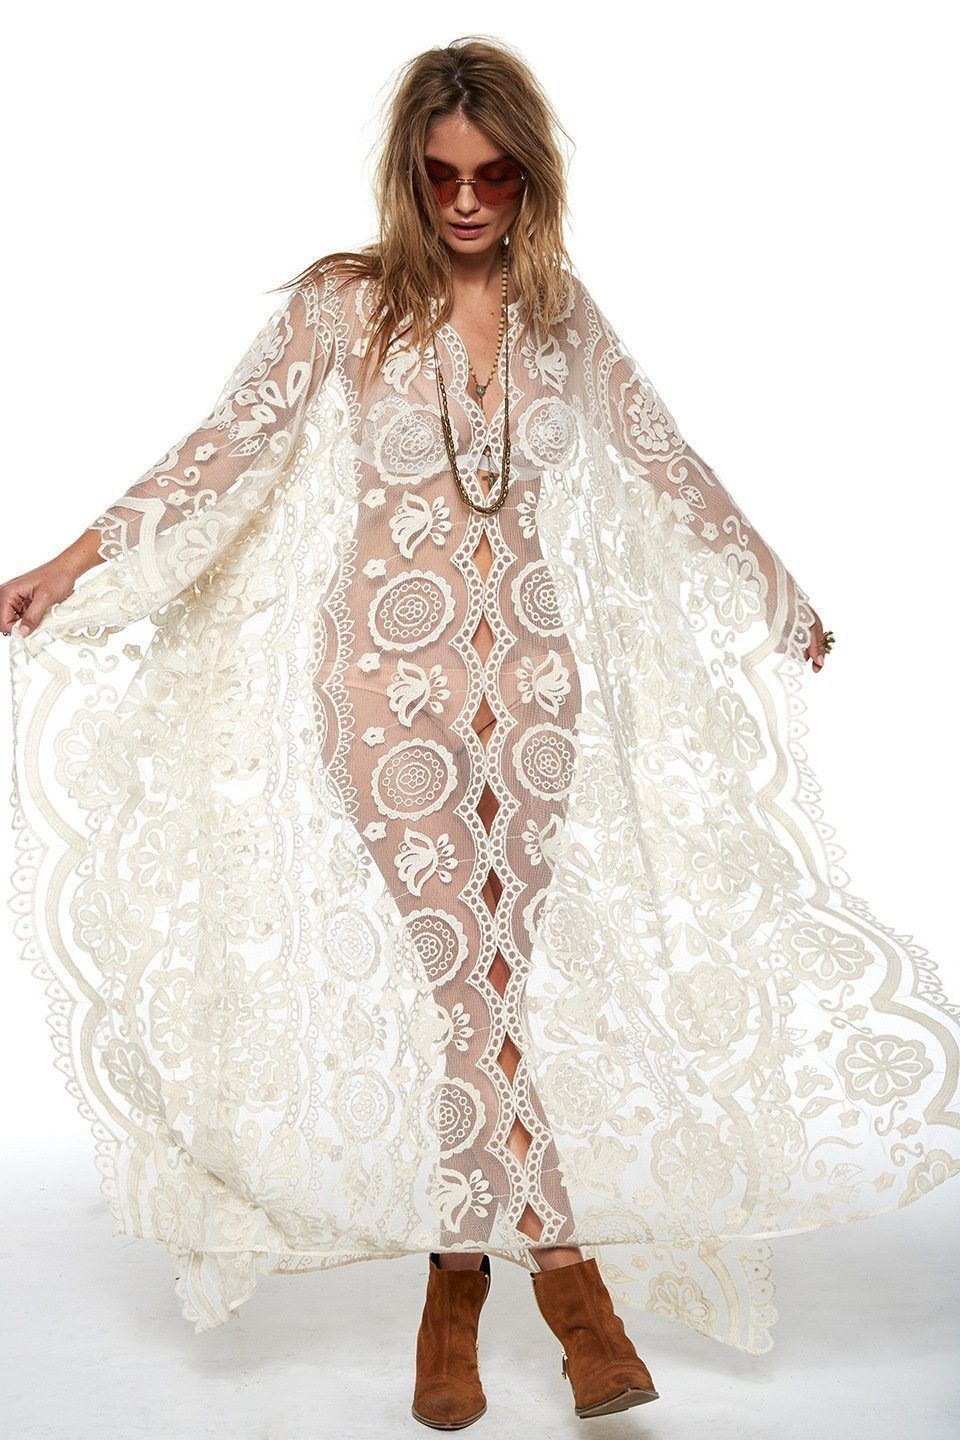 White Lace Lace Beach Cover Up In 2020 Women Lace Dress Maxi Dress Party Womens Maxi Dresses